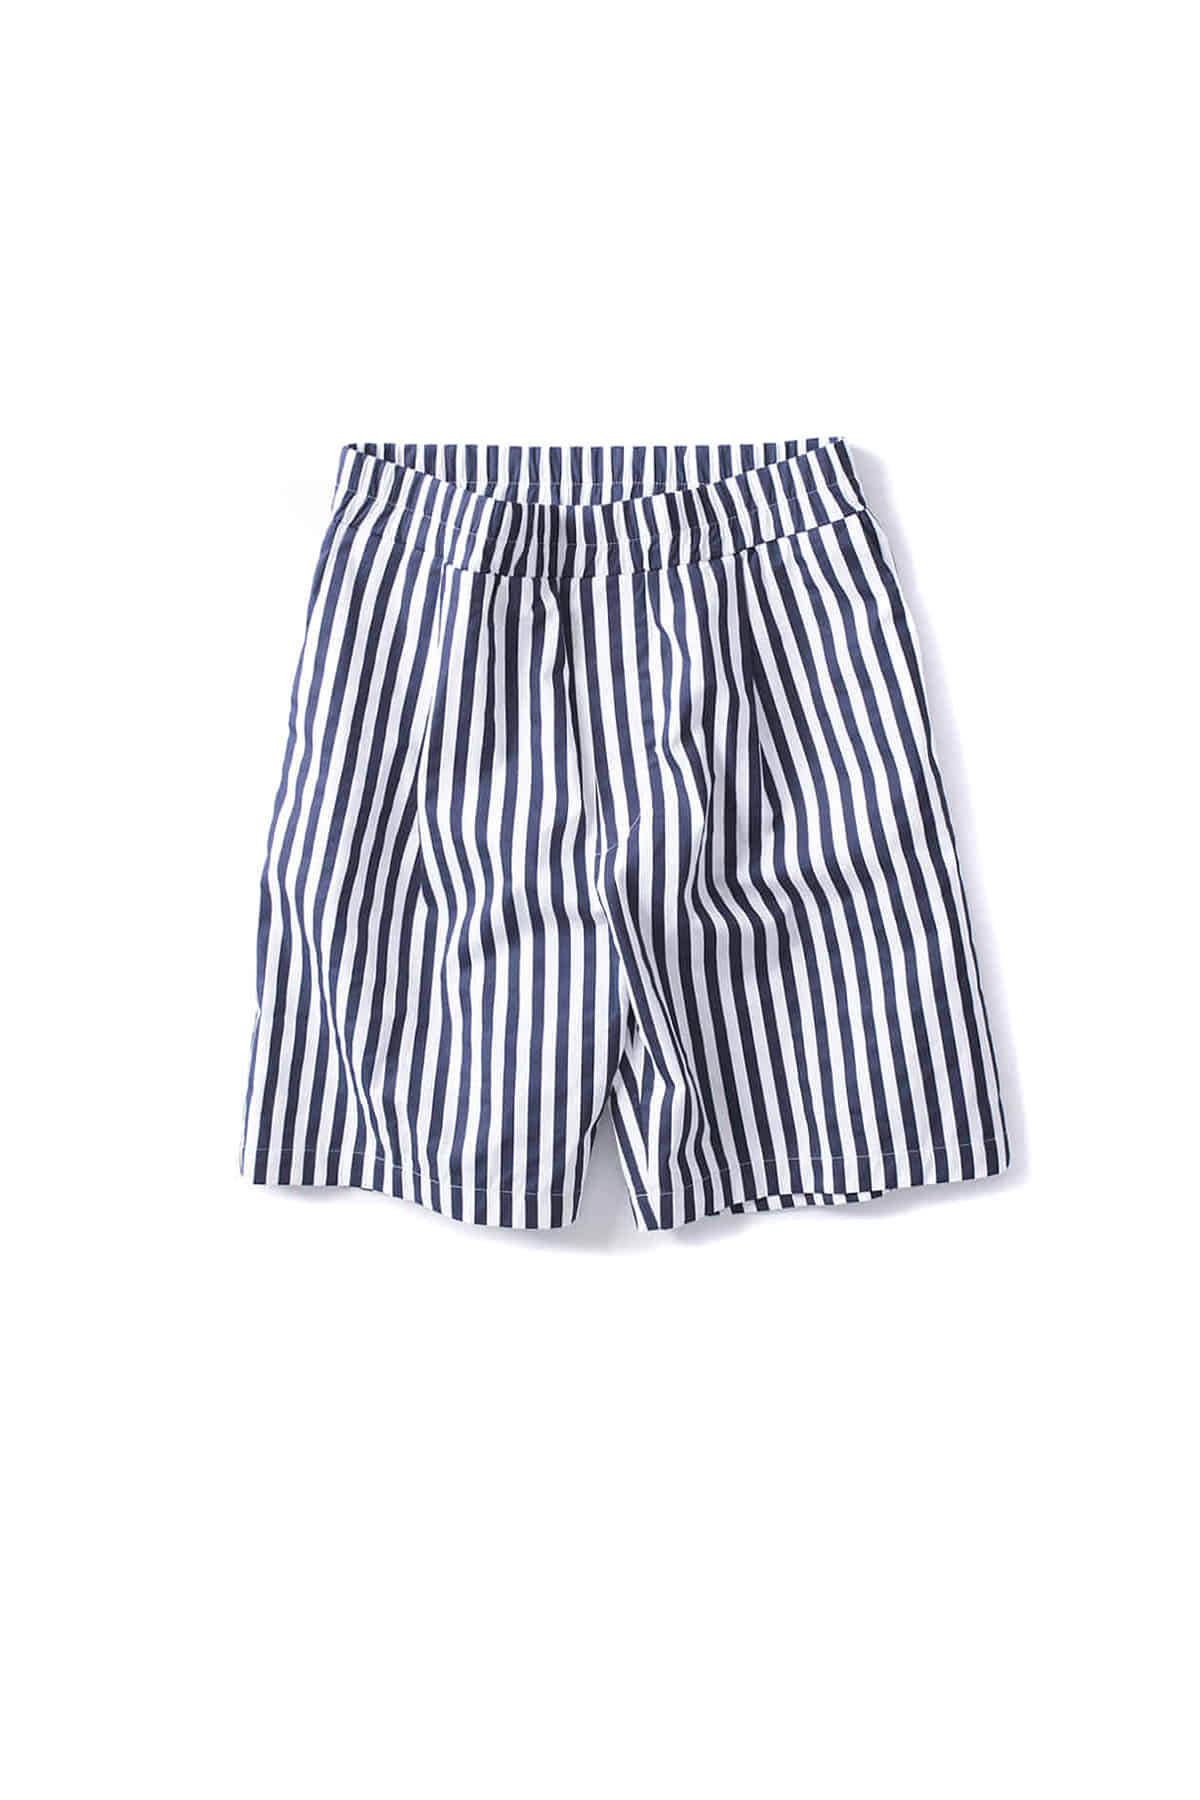 SUNNEI : Regular Elastic Shorts (Blue Stripe)